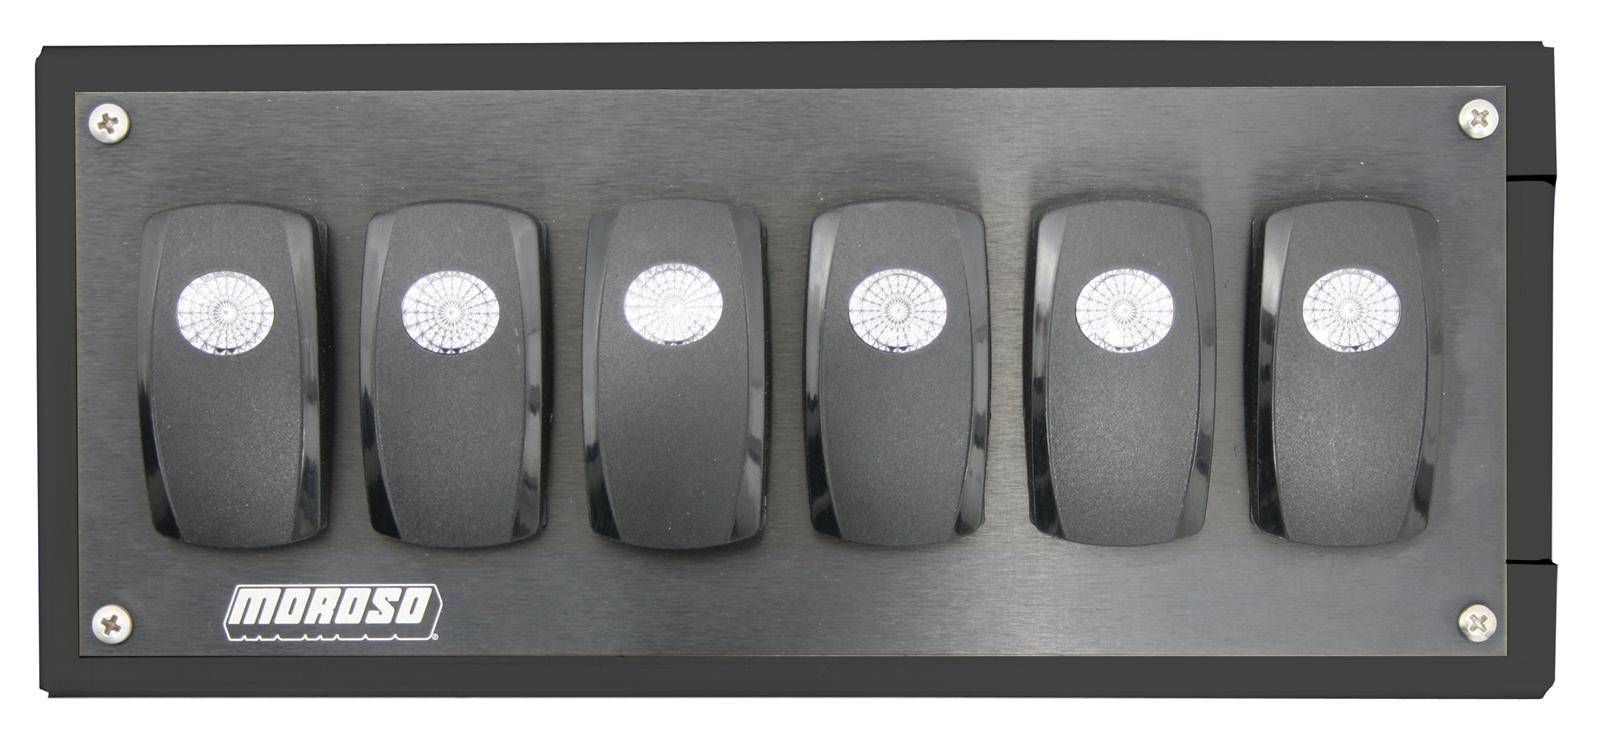 Moroso MCU Rocker Switch Panels 76025 - Free Shipping on Orders Over $99 at  Summit Racing